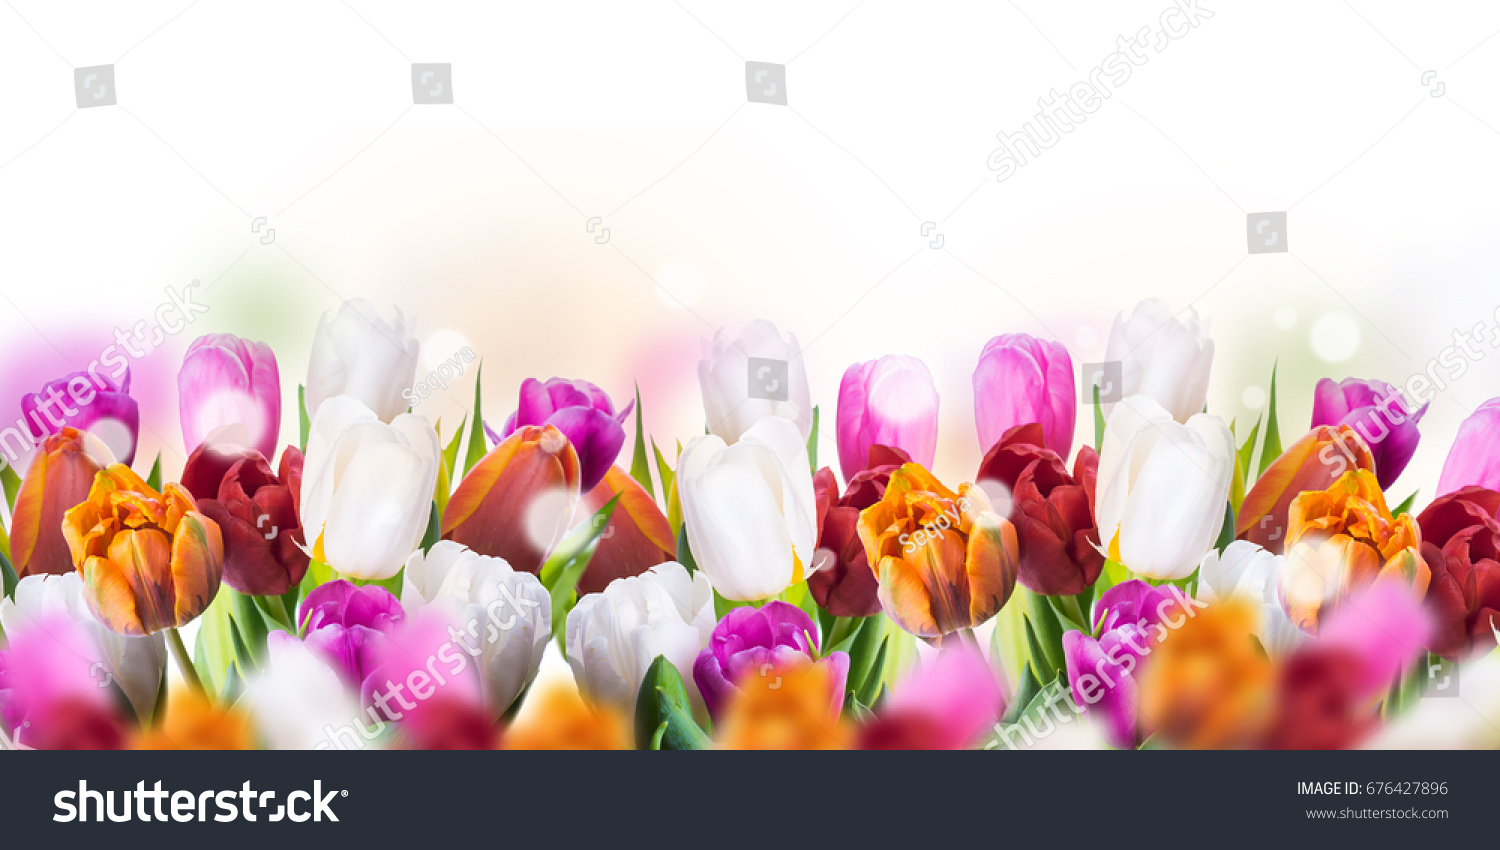 Multi Colored Tulips With Willow And Butterflies Easter Flowers